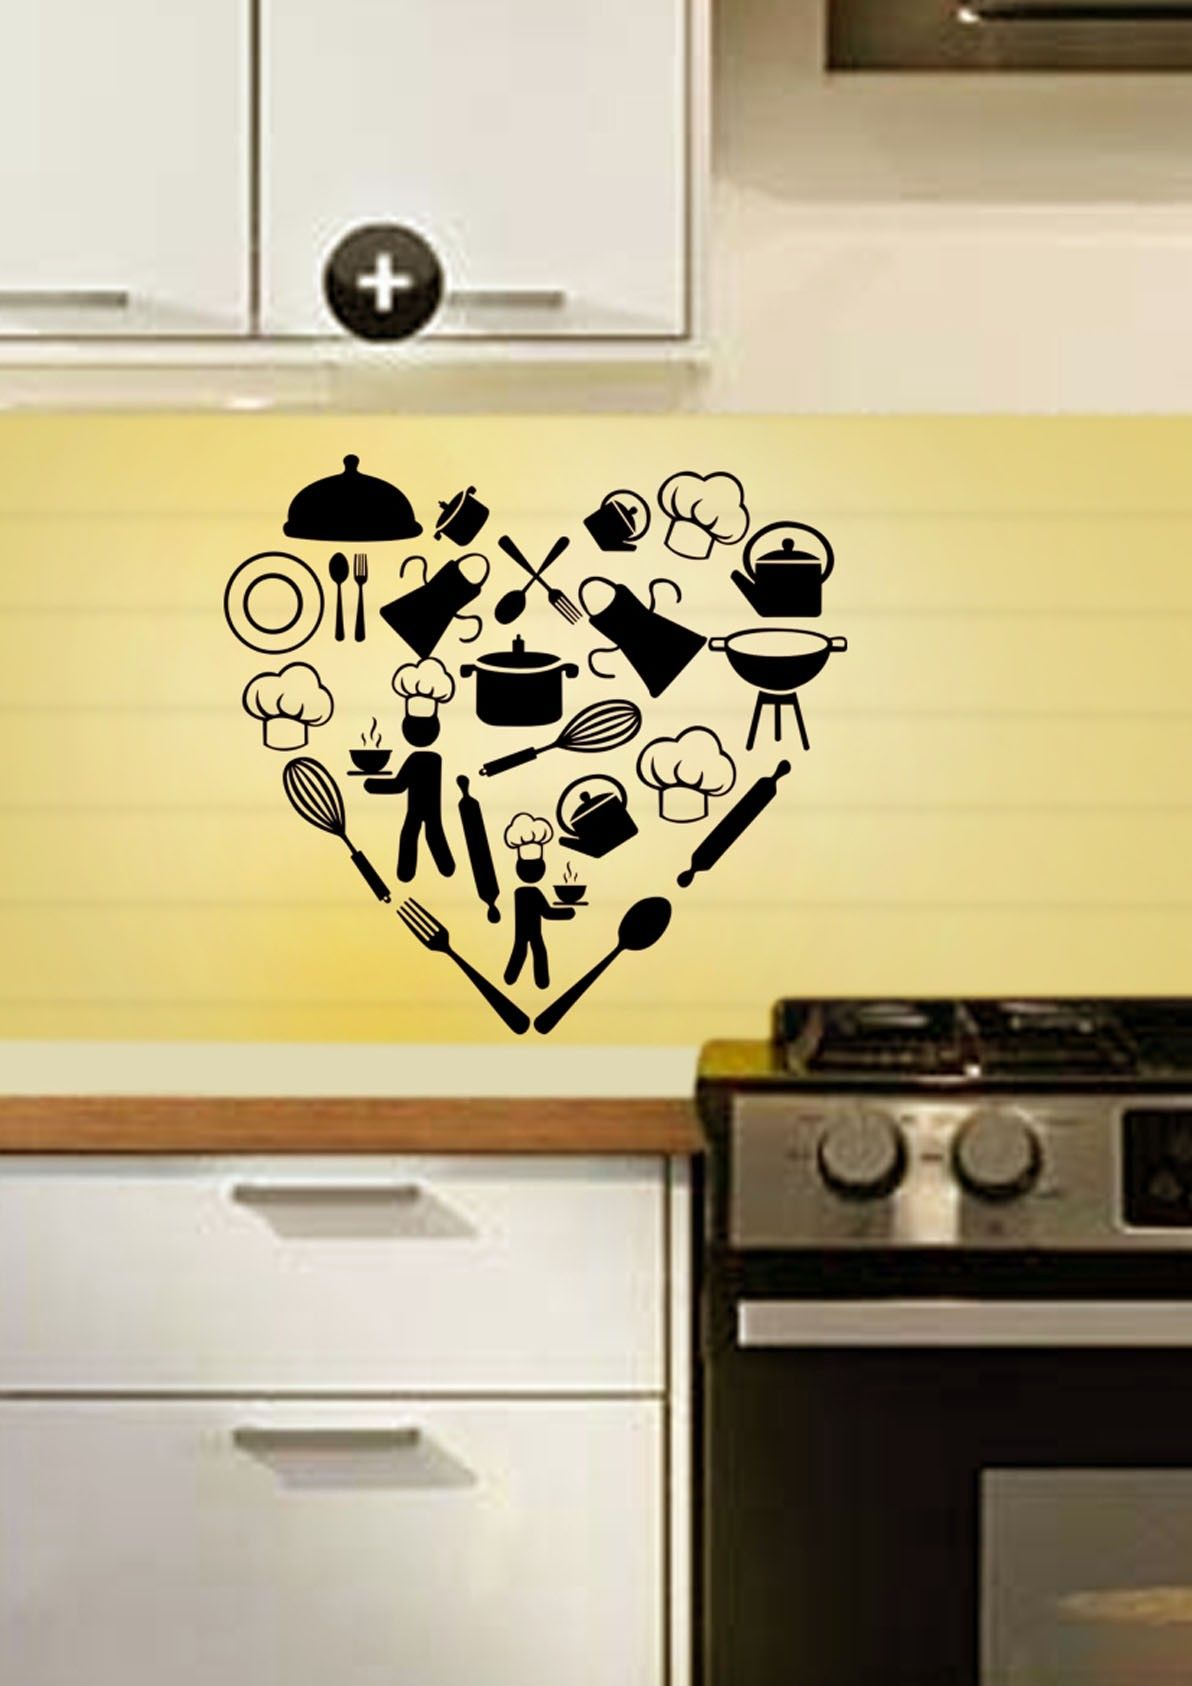 Home / Kitchenware Heart Kitchen Wall Decal | Festival Wall Stickers ...